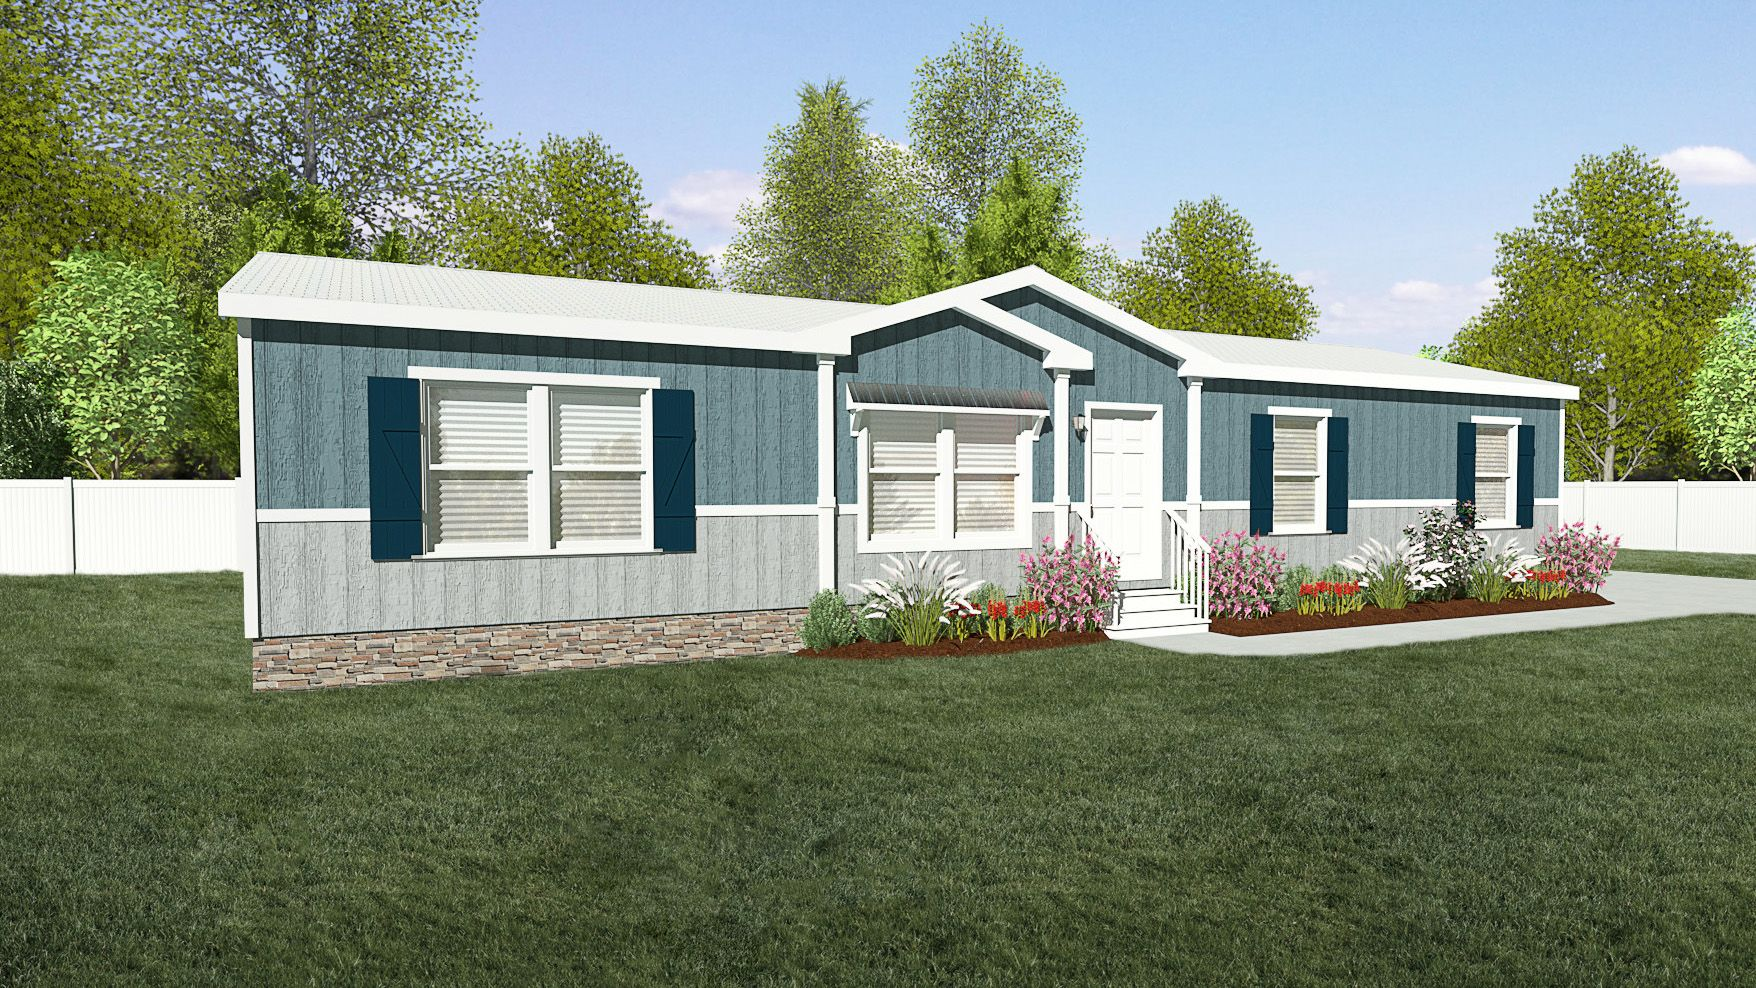 The Journey Home Building On Strong Manufactured Home Foundations